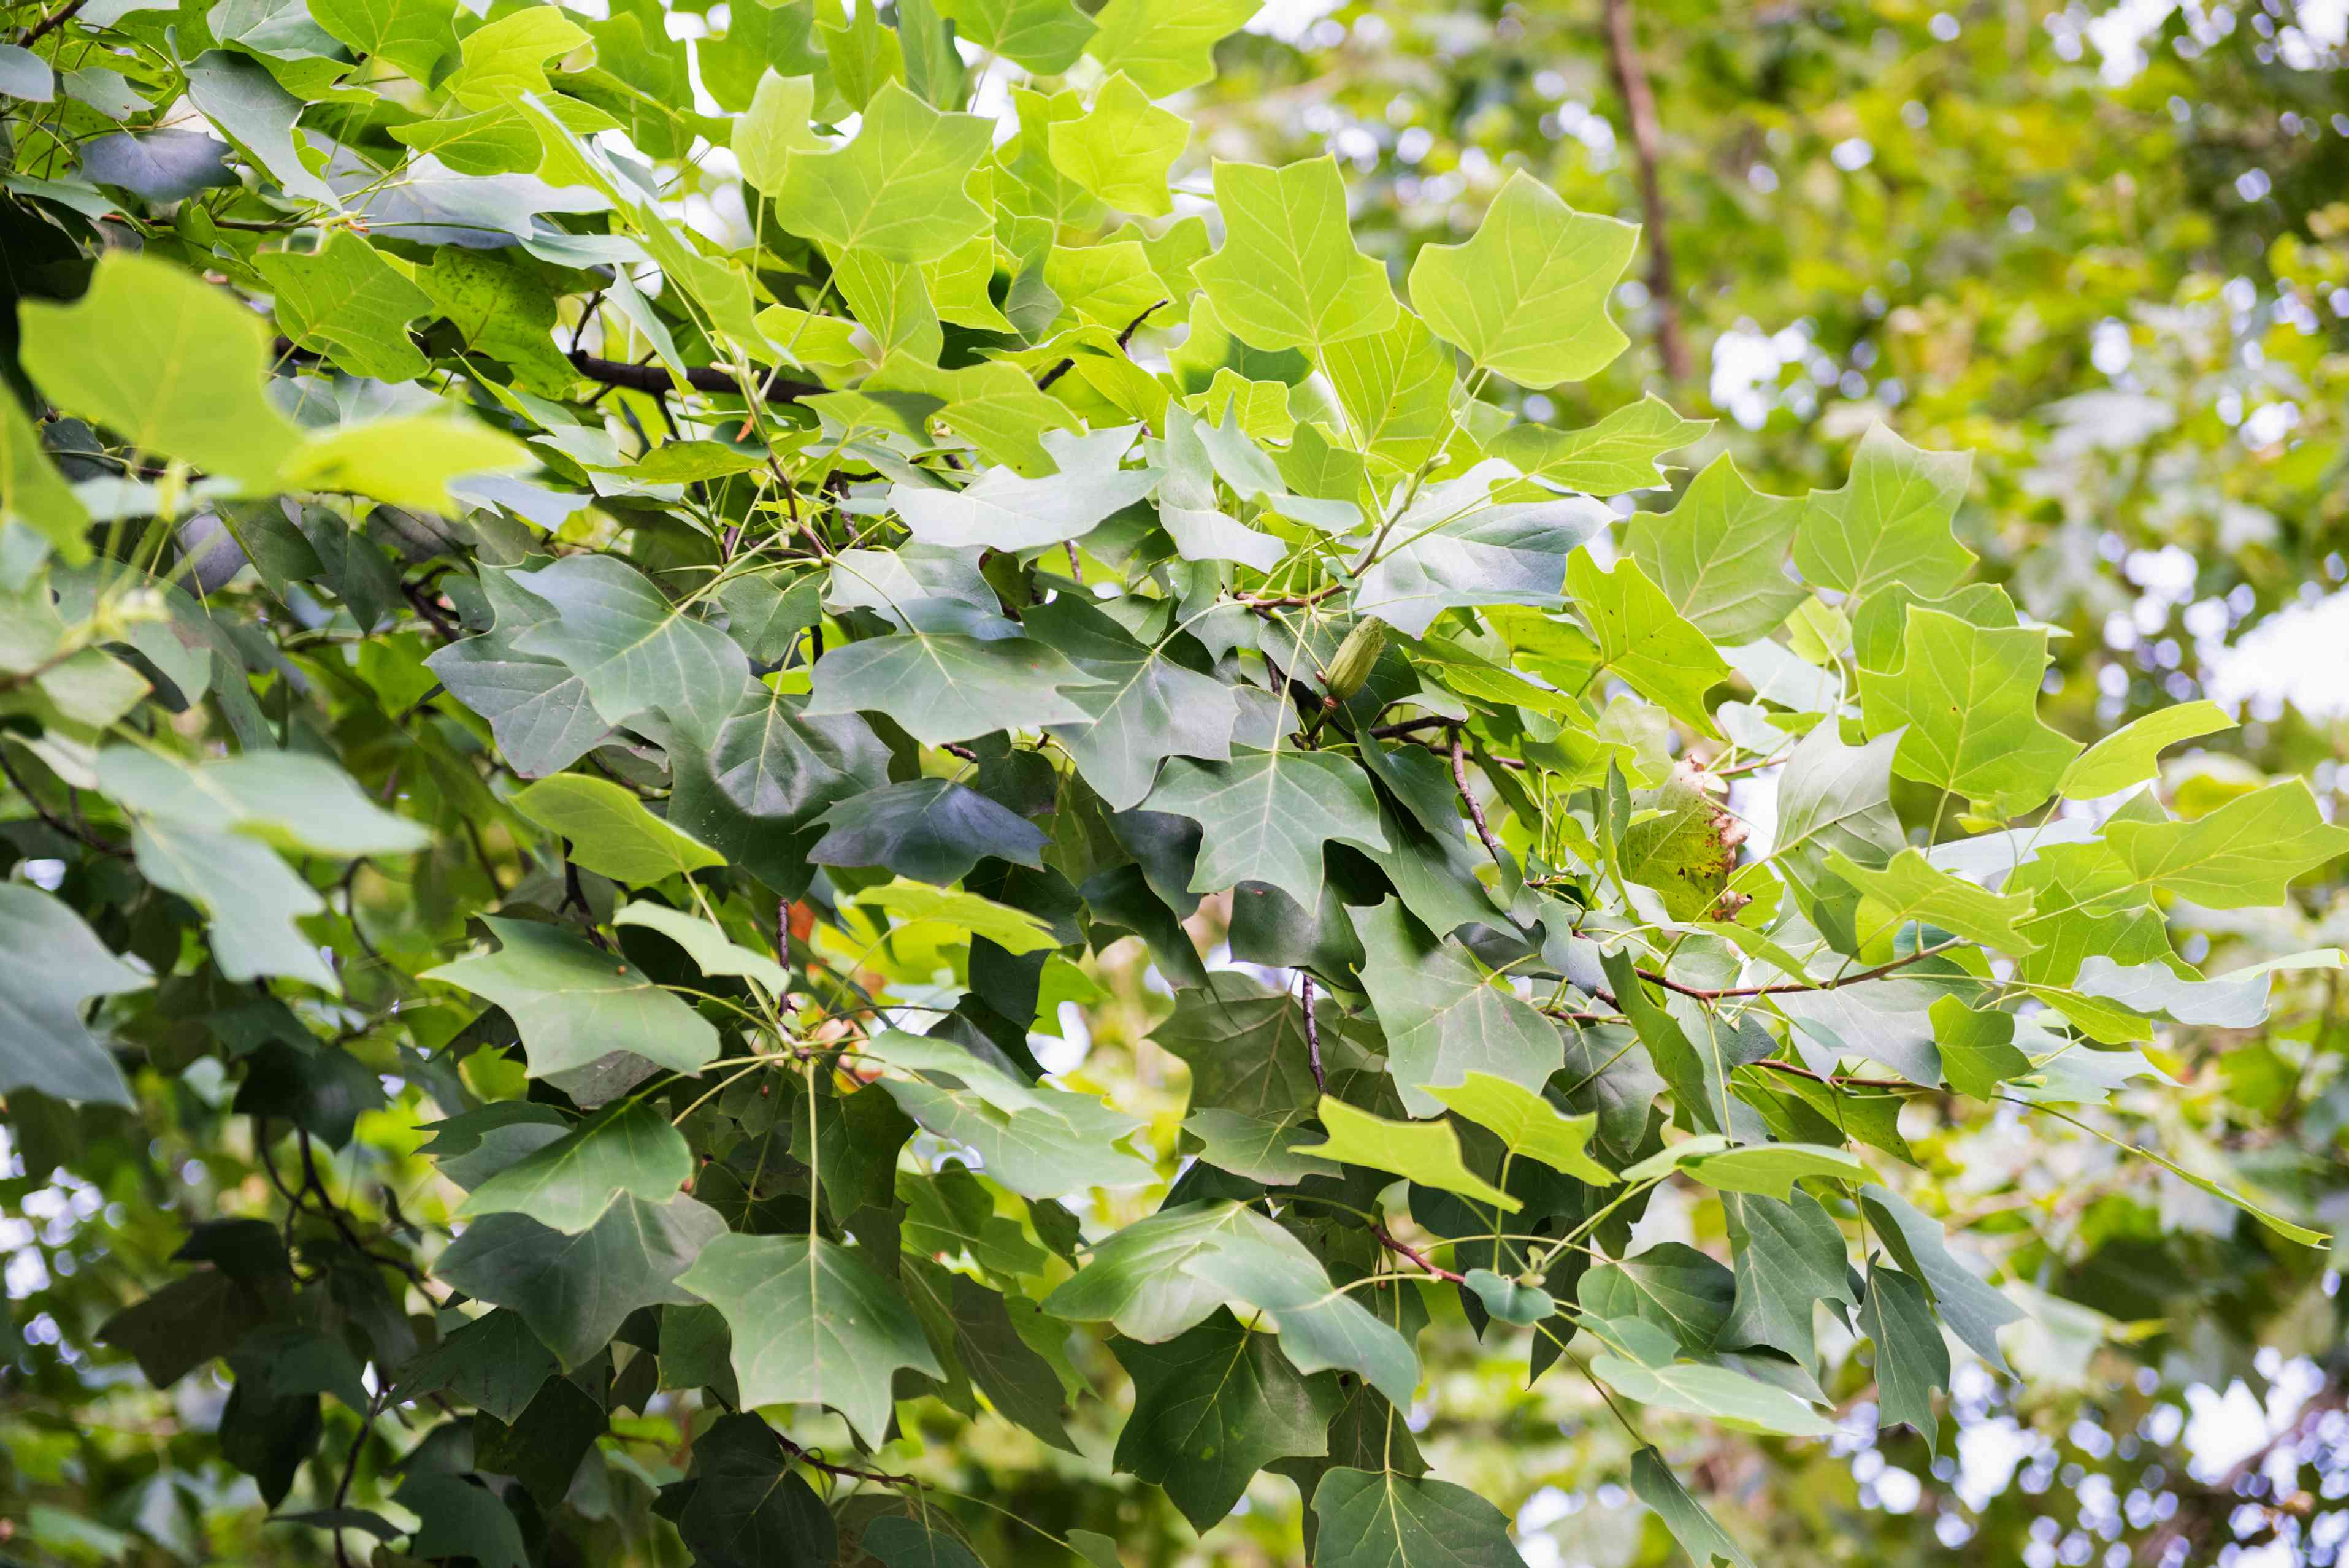 Tulip tree branches with yellow-green leaves bunched together on branch ends